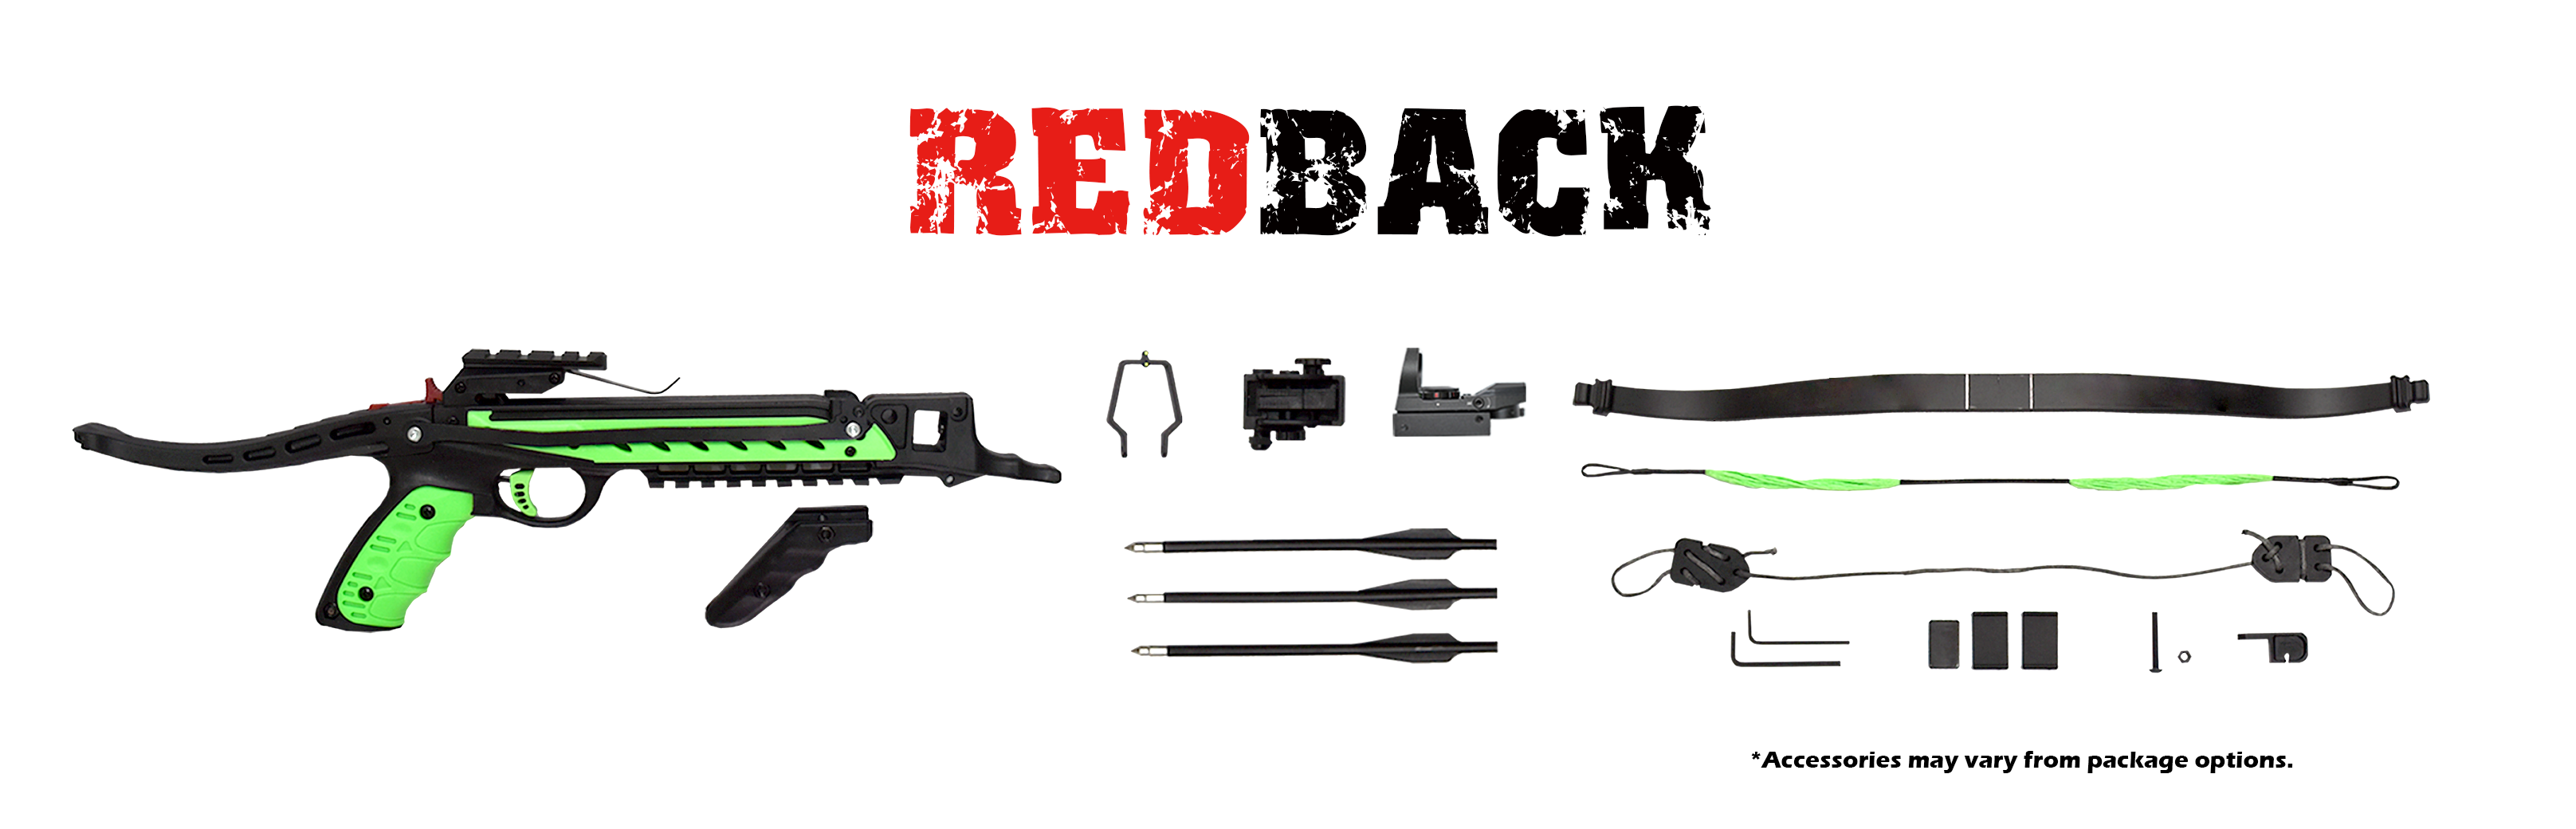 /archive/product/item/images/Redbackdeluxe/REDBACK-4.png